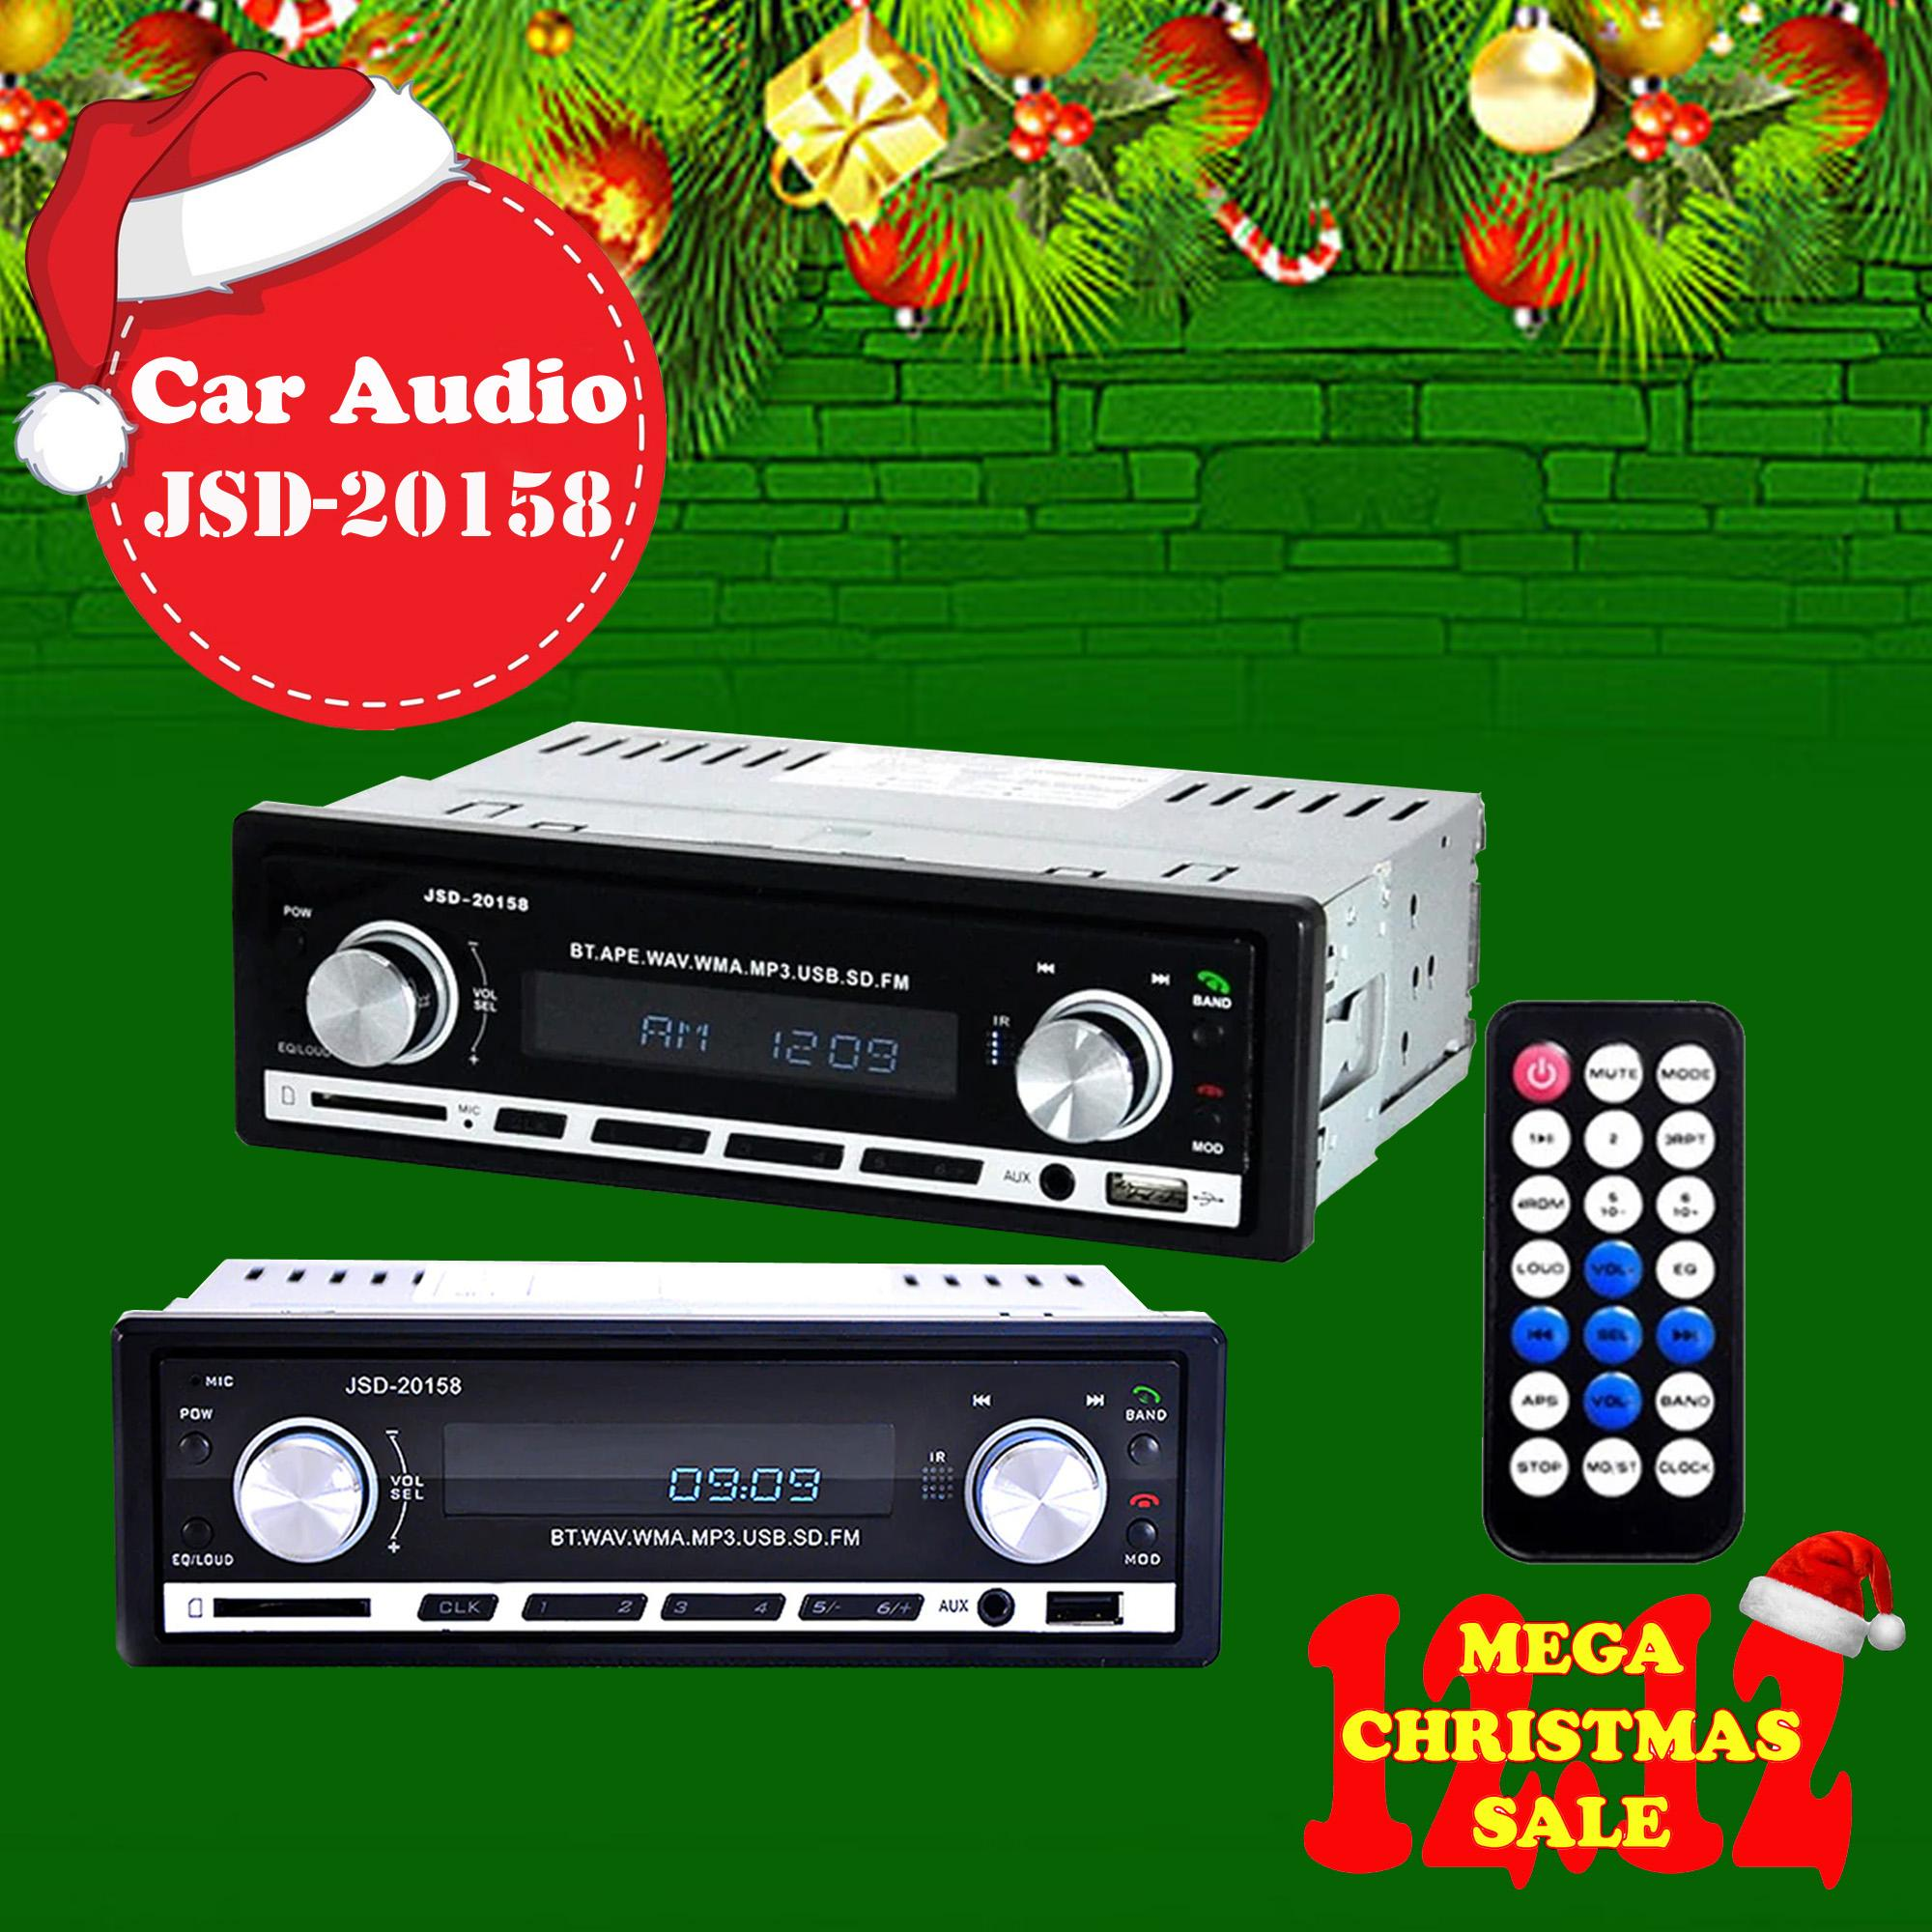 Car Stereo For Sale Cars Online Brands Prices 2002 L300 Radio Wiring Color Cwl Jsd 20158 Mp3 Player Usb Sd Aux Audio 1 Din